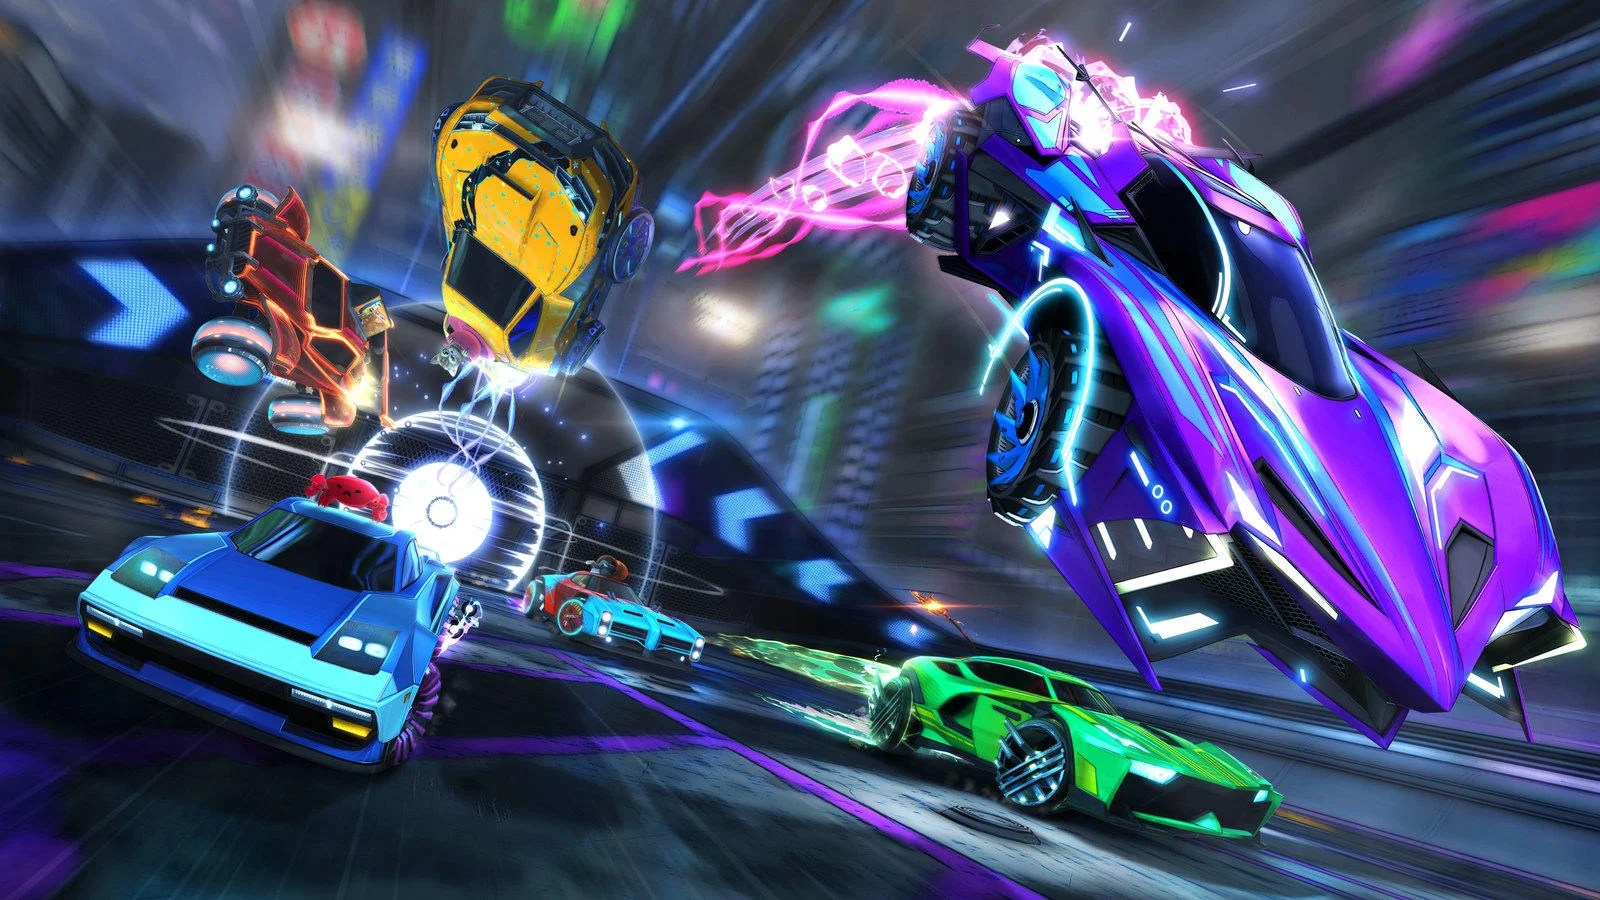 Küche Gebraucht Kaufen Gießen Play Rocket League Rocket League Official Site